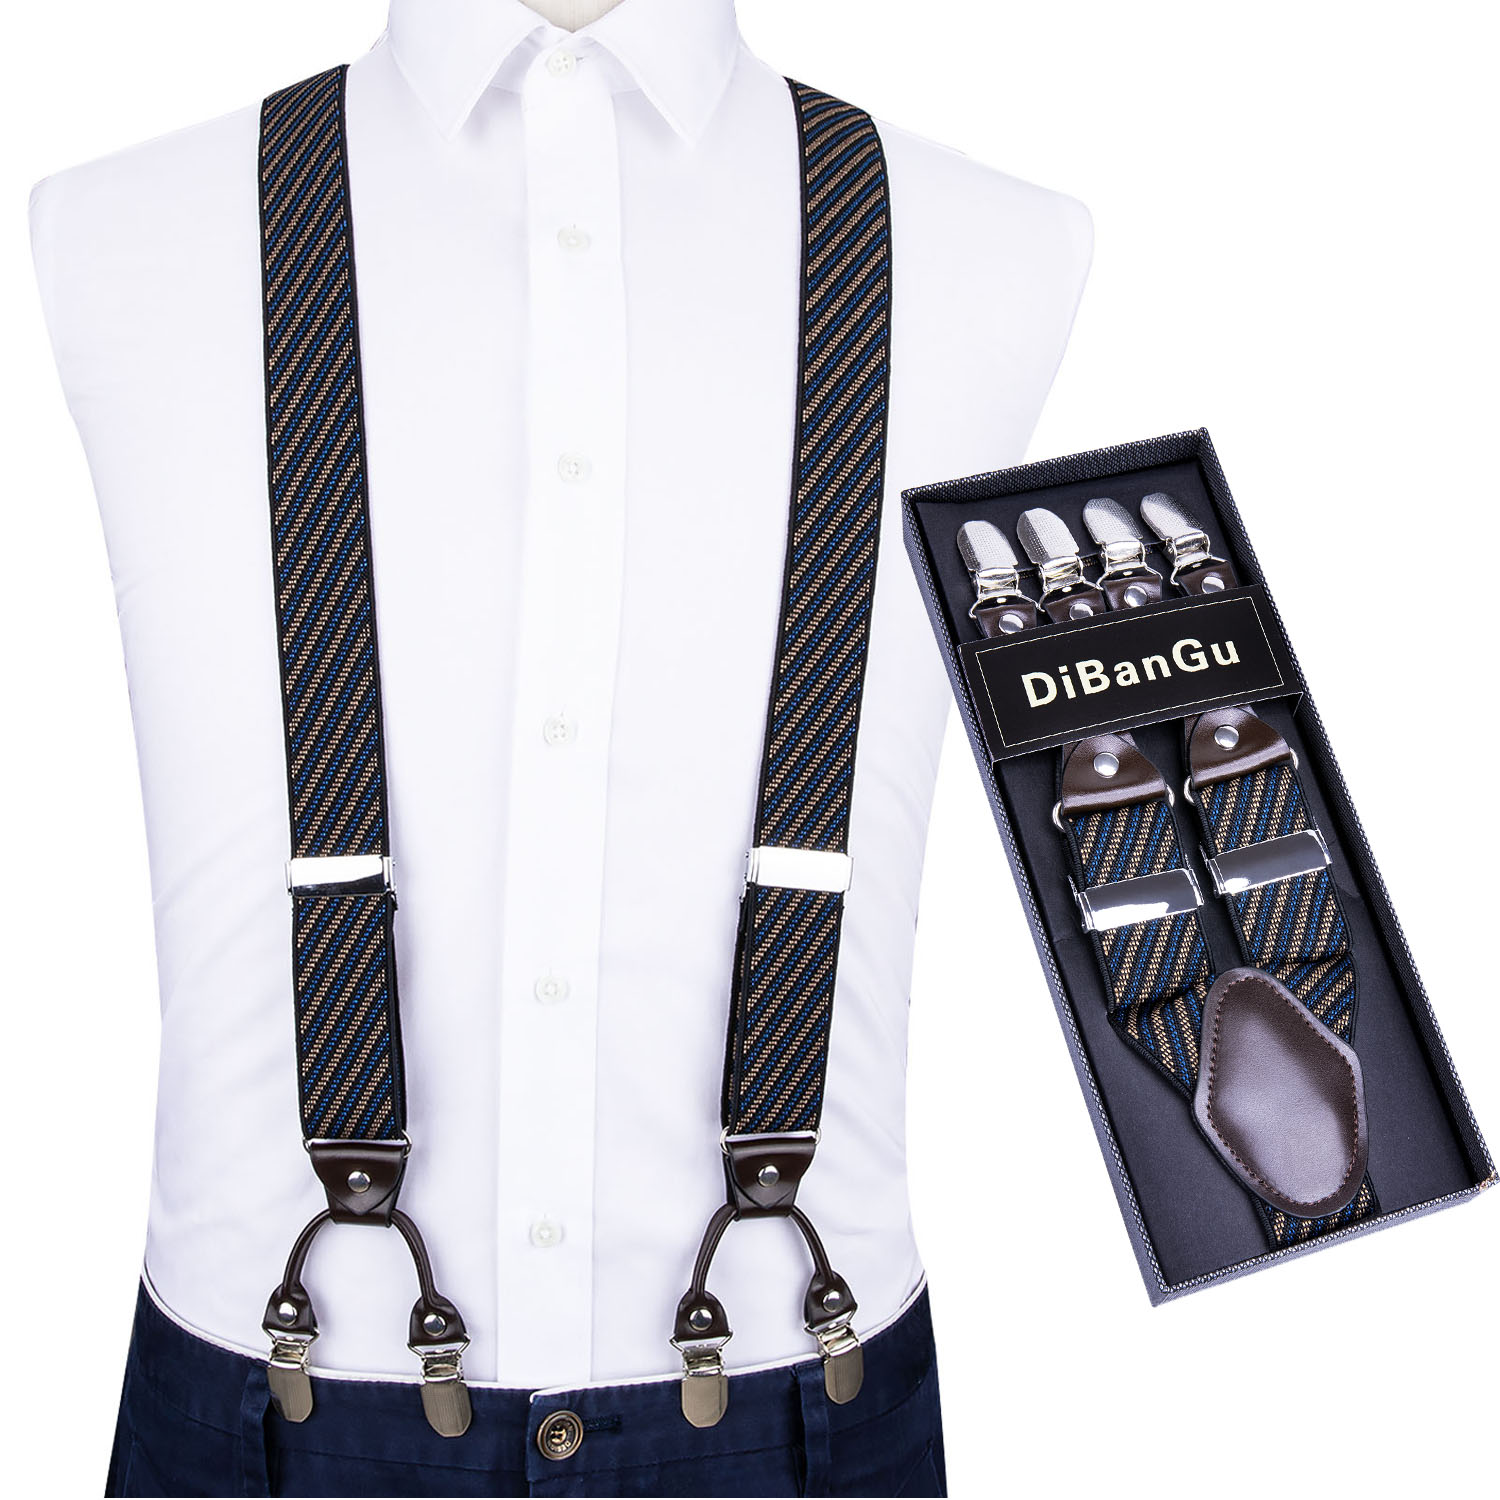 Adjustable Elasticated Adult Suspender Straps Y Shape Clip-on Men's Suspenders 6 Clip Pants Braces For Men Straps DH06 DiBanGu